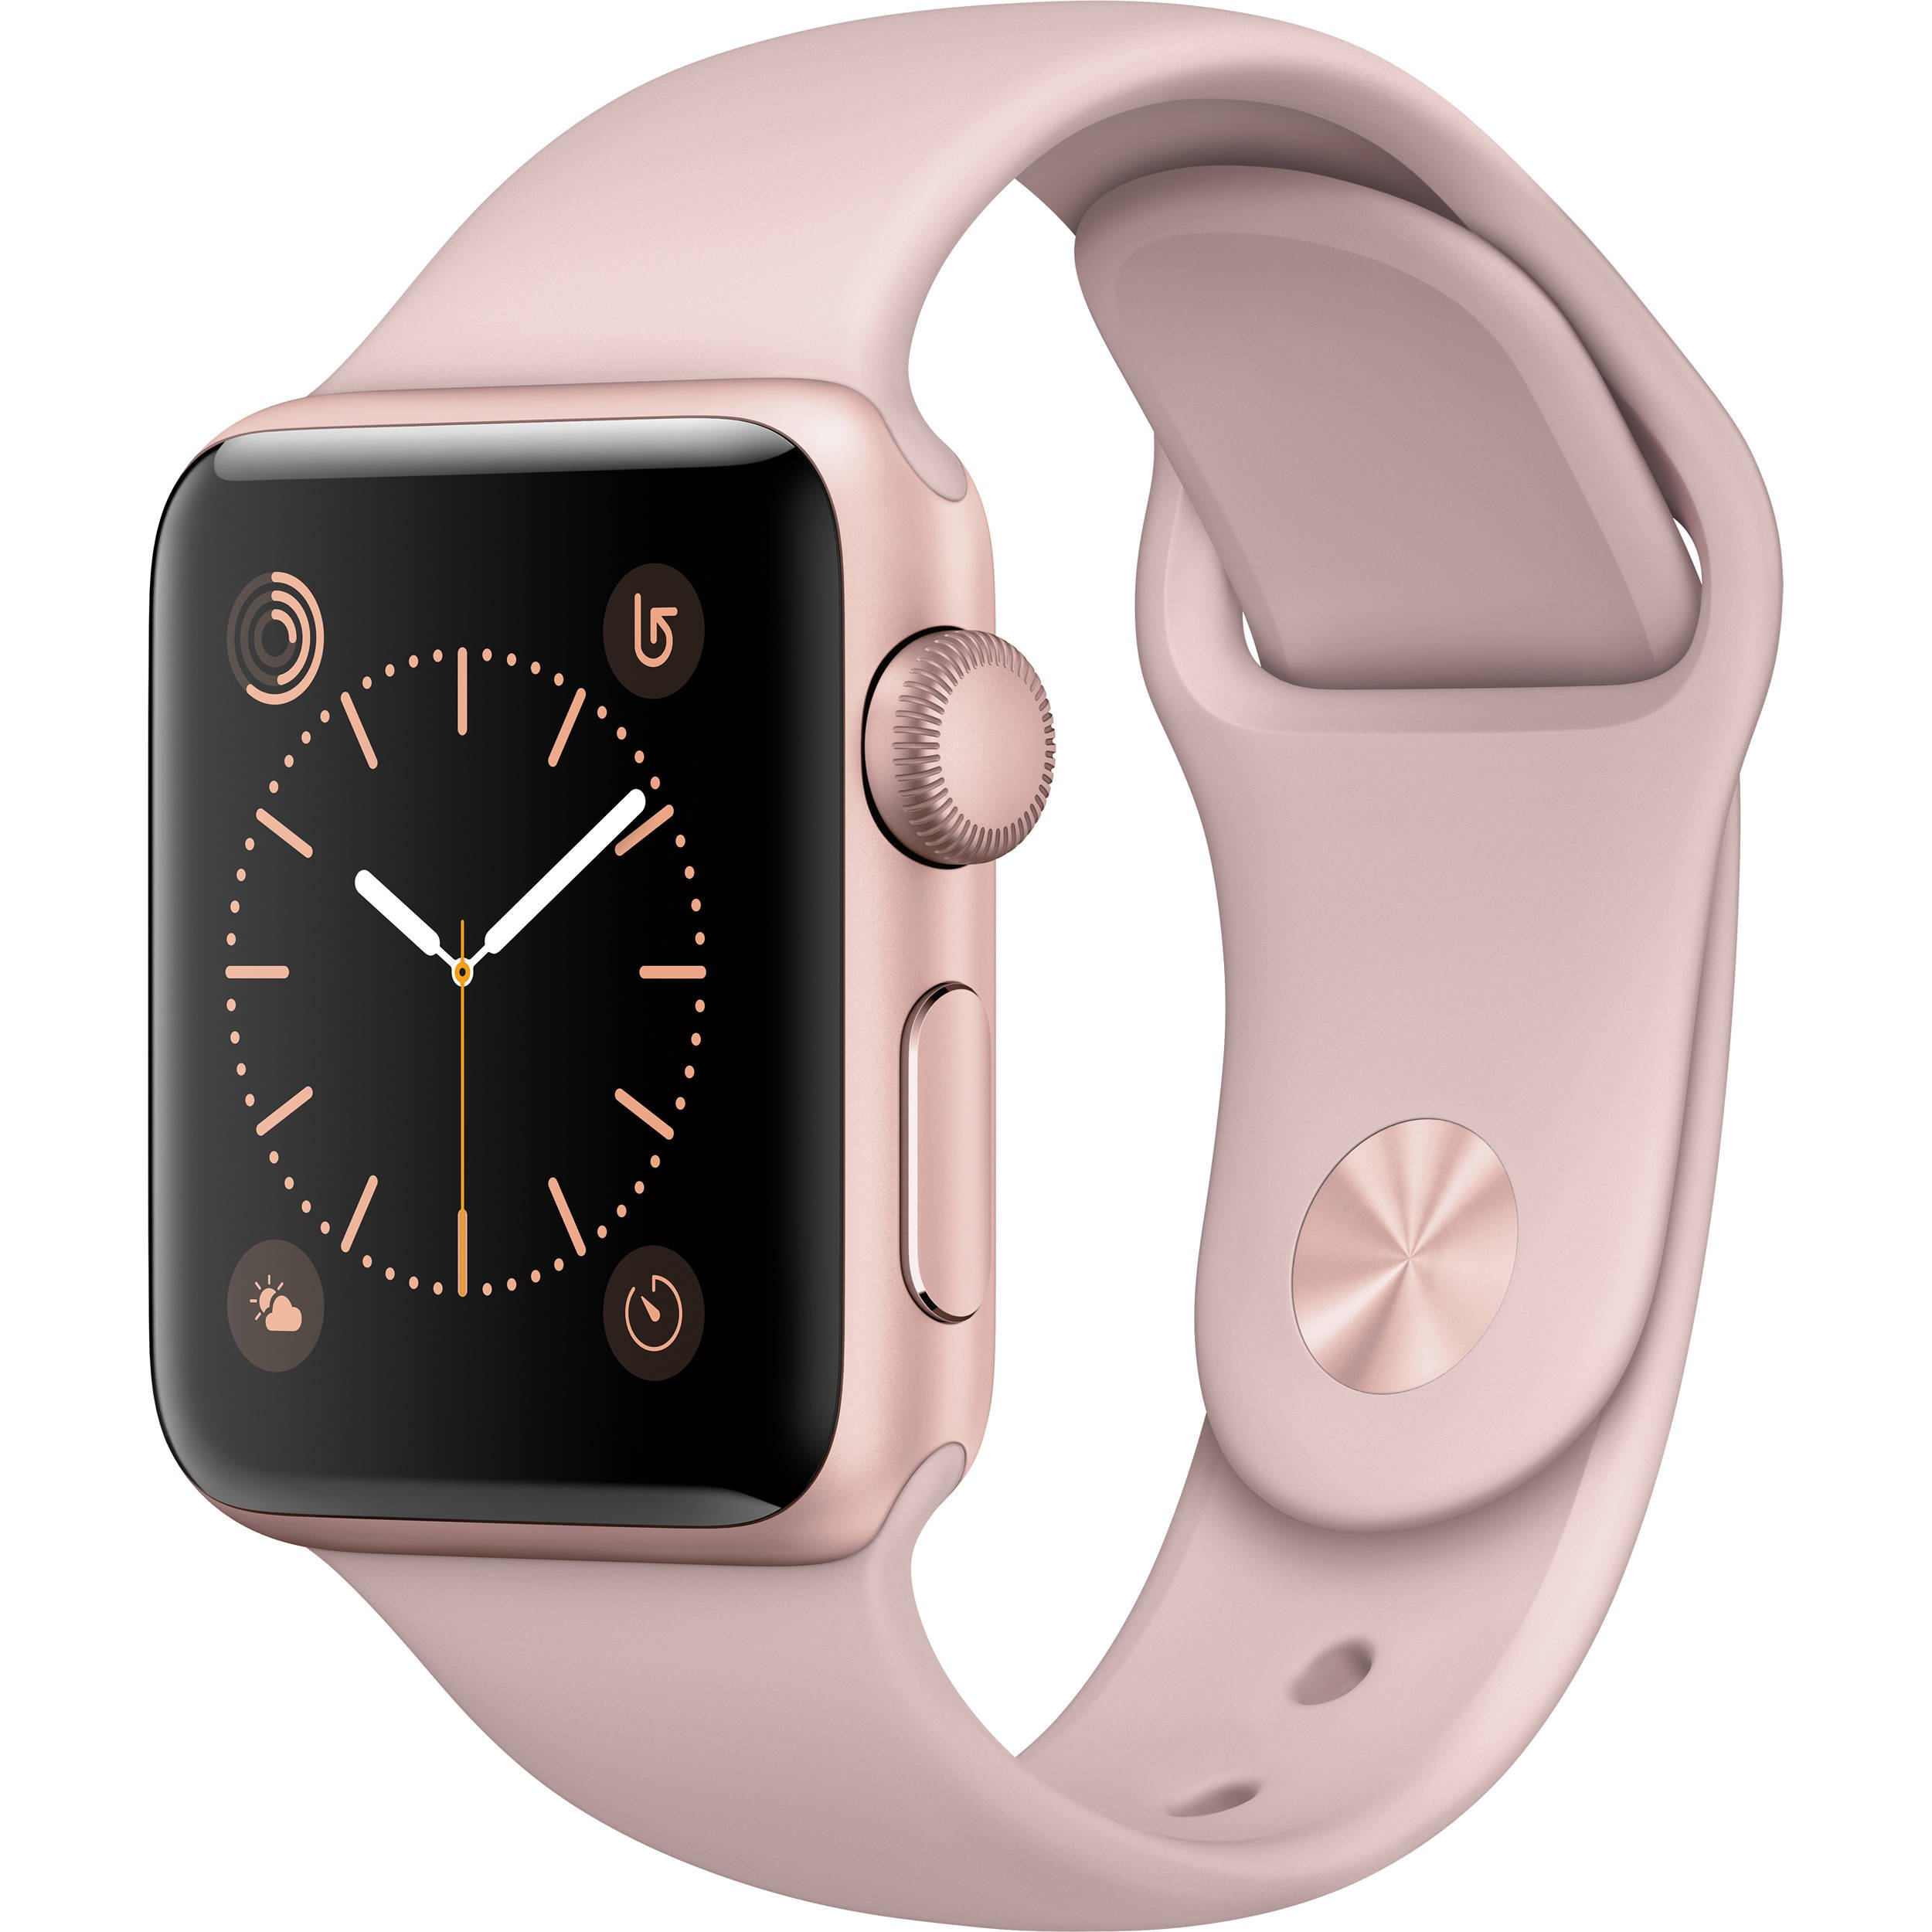 Renewed Apple Watch Series 2, 42mm Rose Gold Aluminum Case with Pink Sand Sport Band